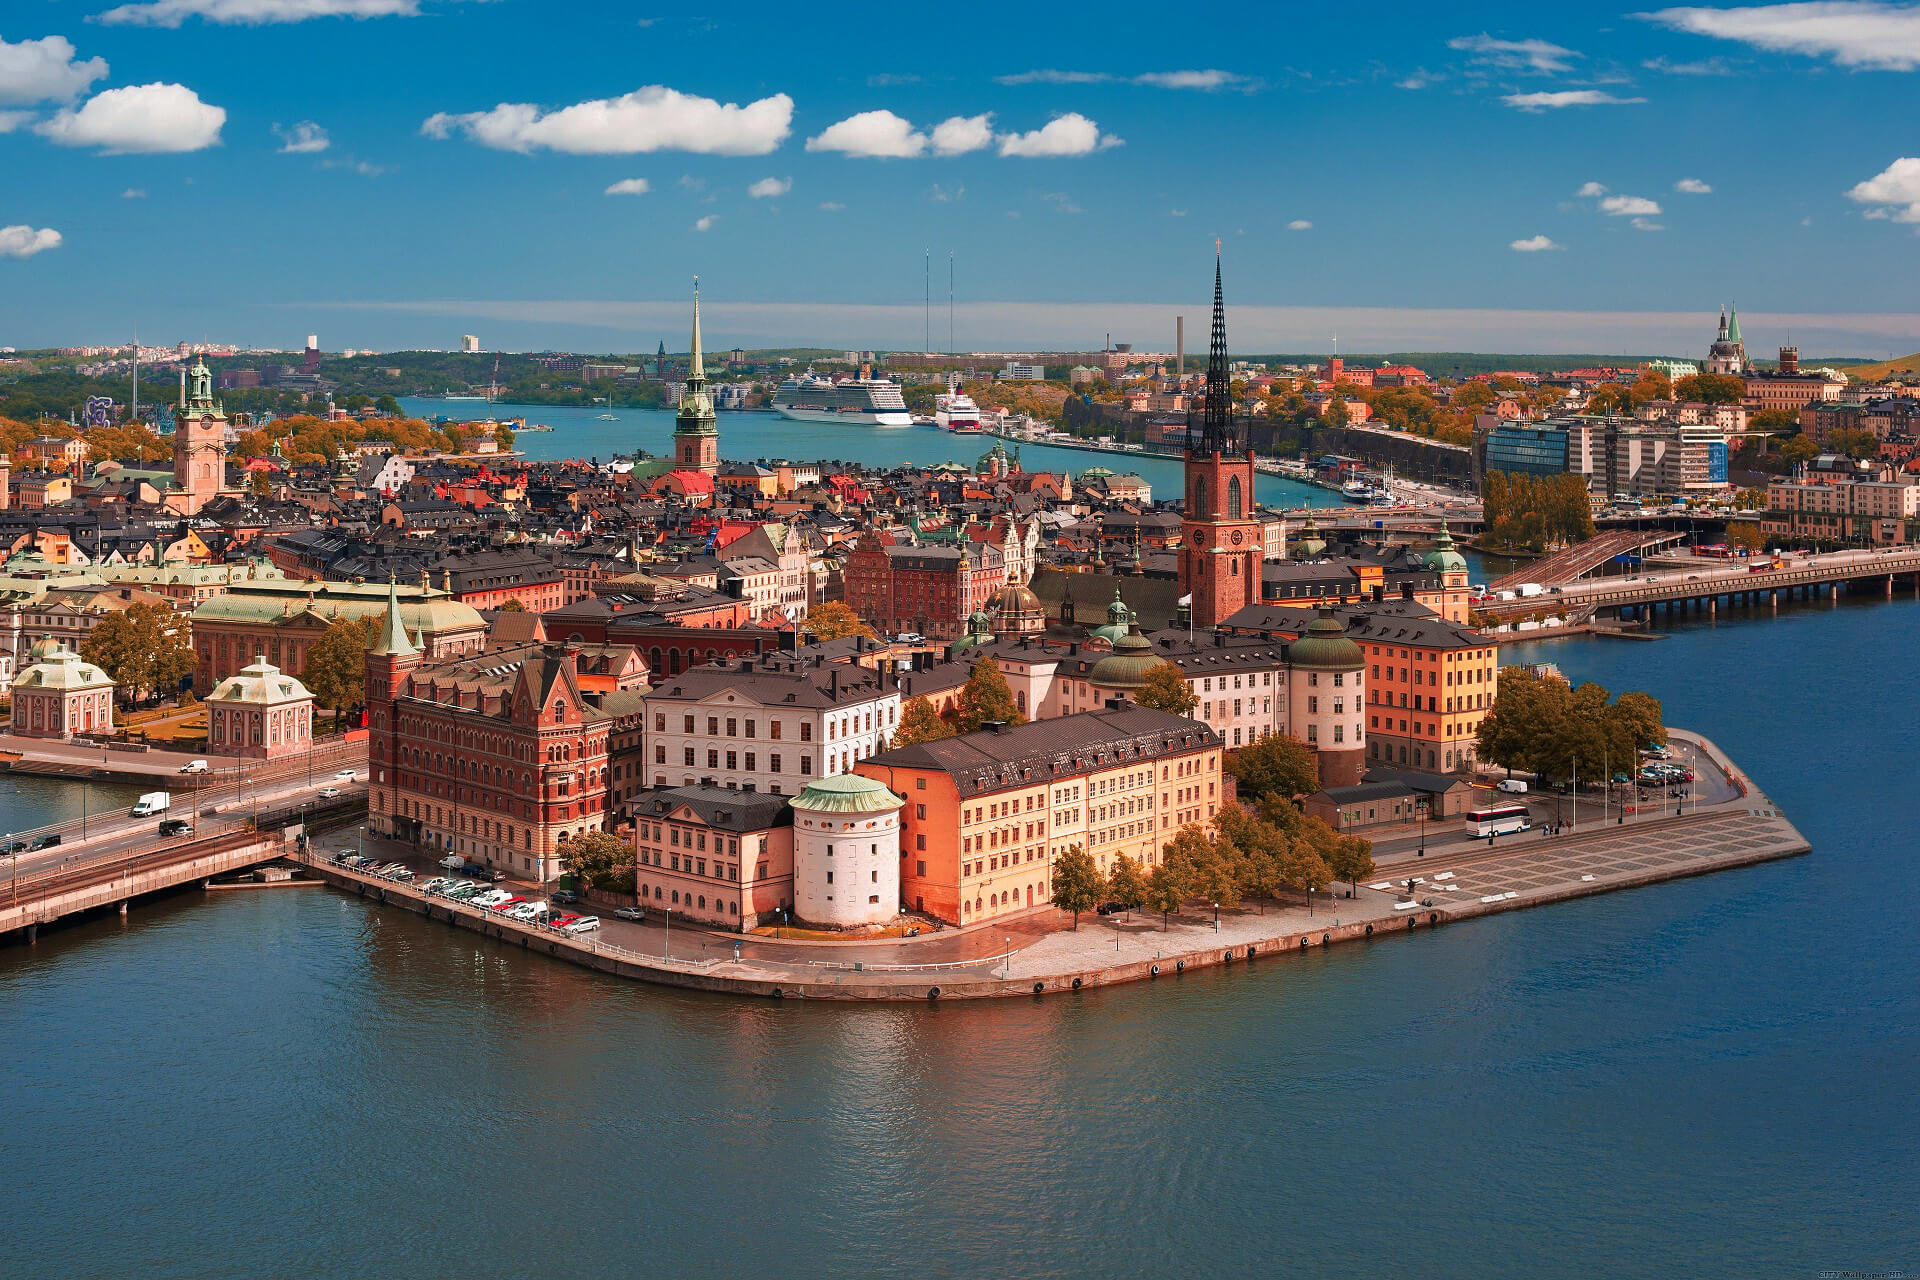 Stockholm - Venice Of The North